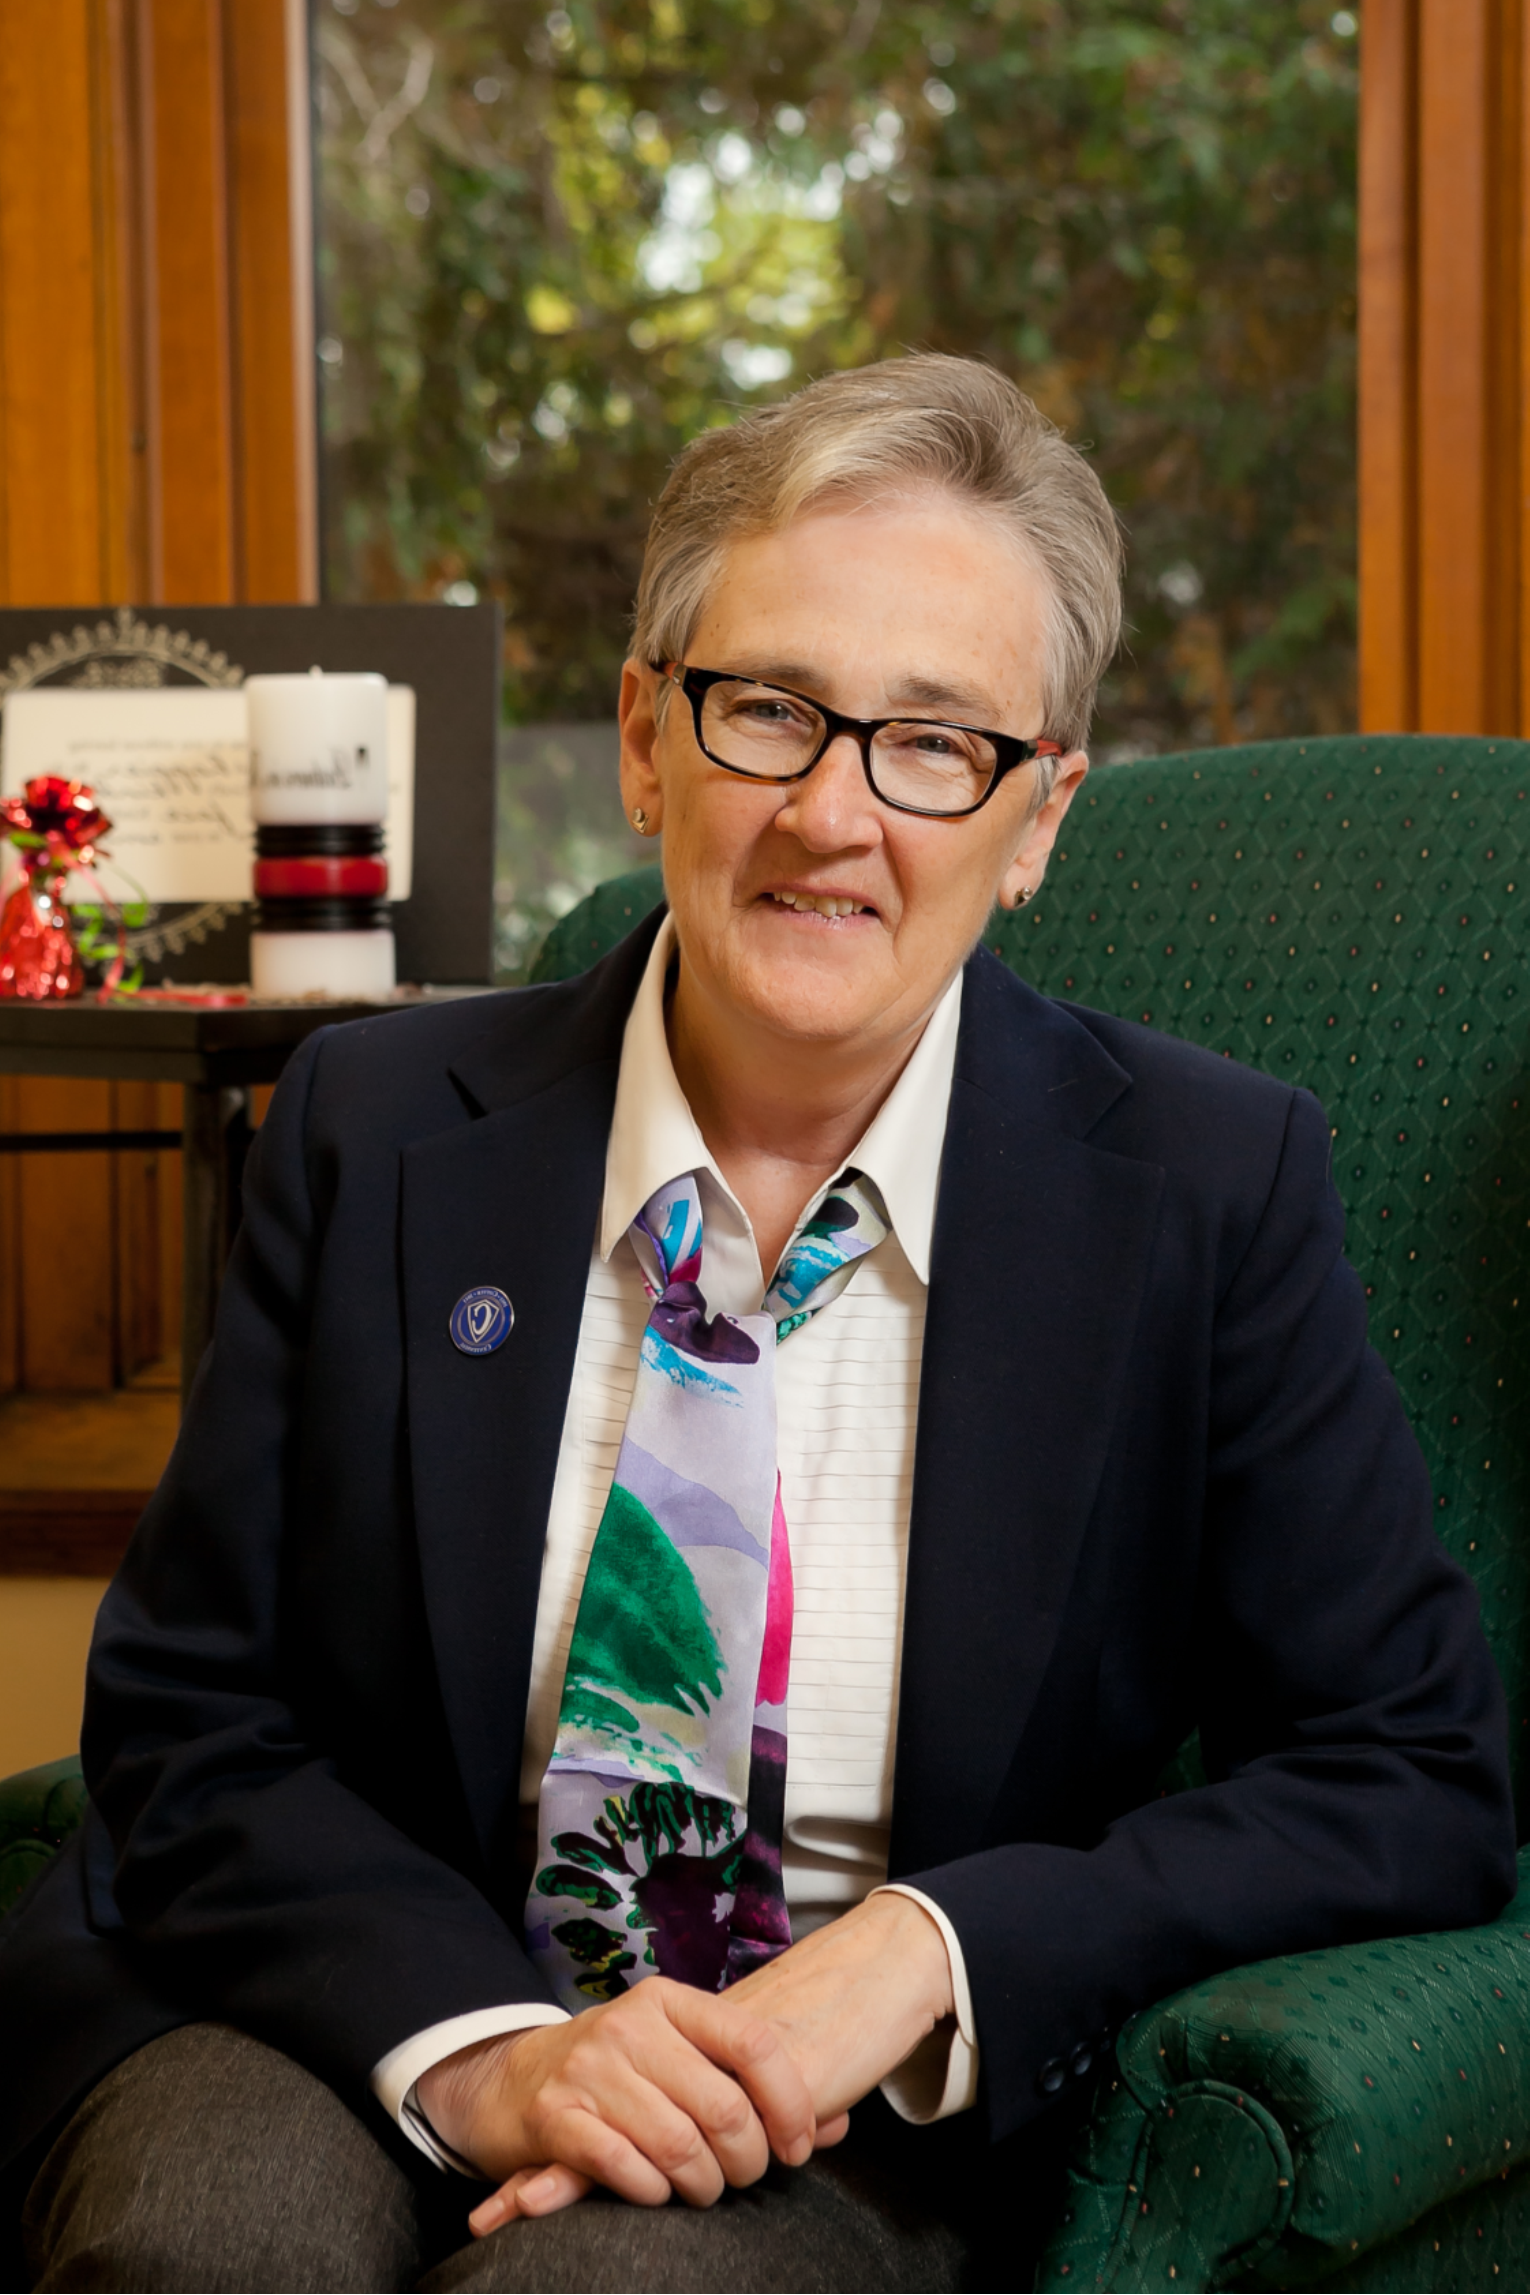 Image of Sister Judith Schaefer, OP, PhD, sitting in a green chair in her office. She is wearing glasses, a navy blue blazer, white shirt, and a silk scarf with multi-colored flowers.